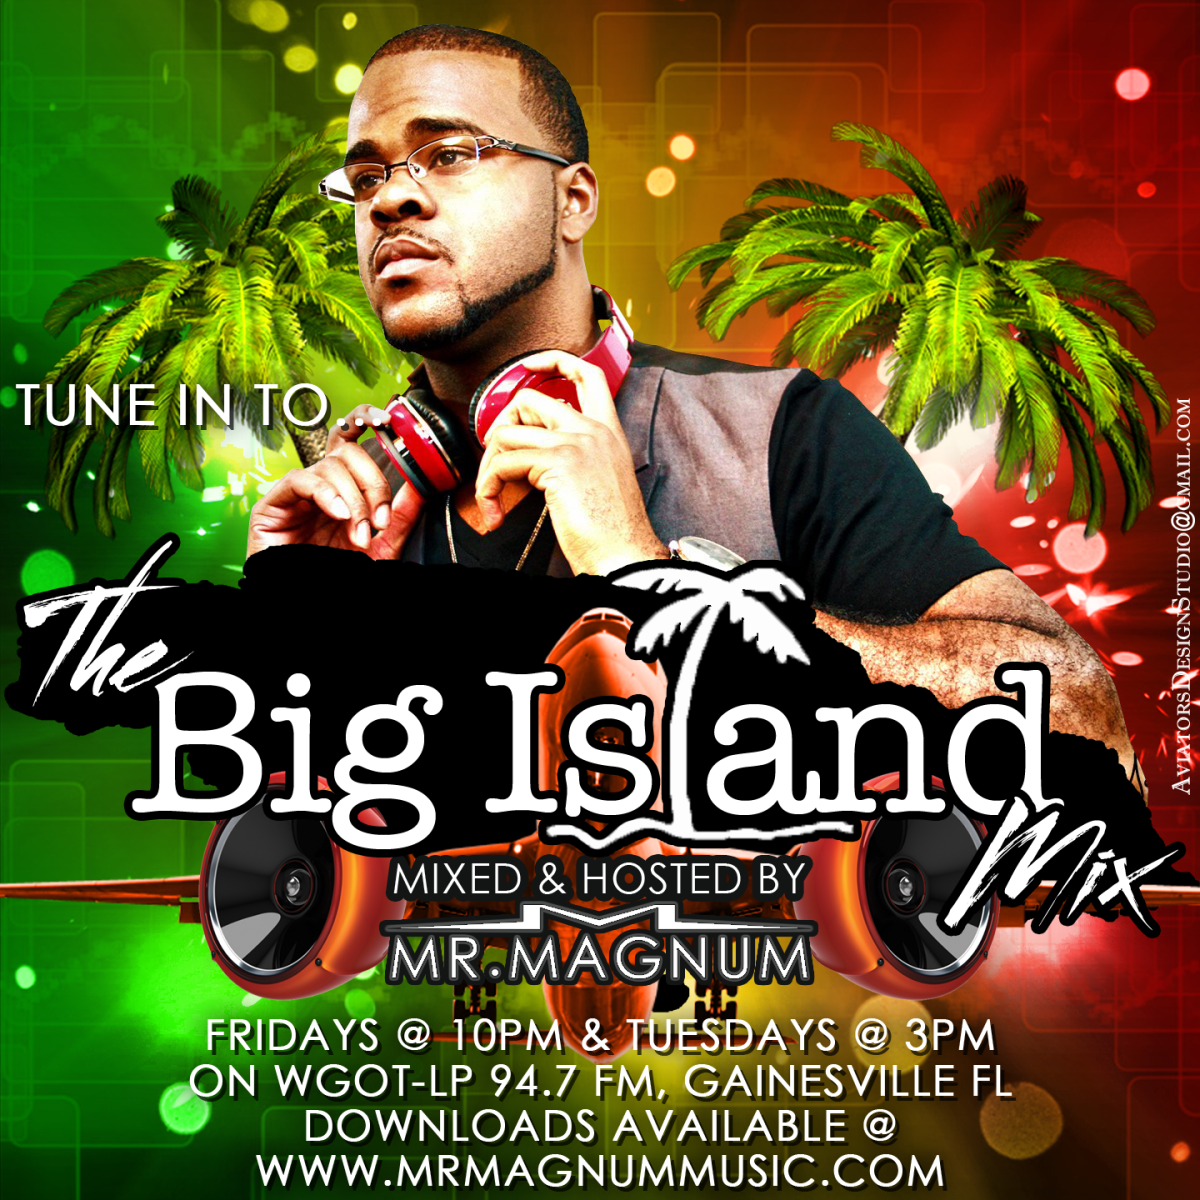 The Big Island Mix S0102 - New Dancehall